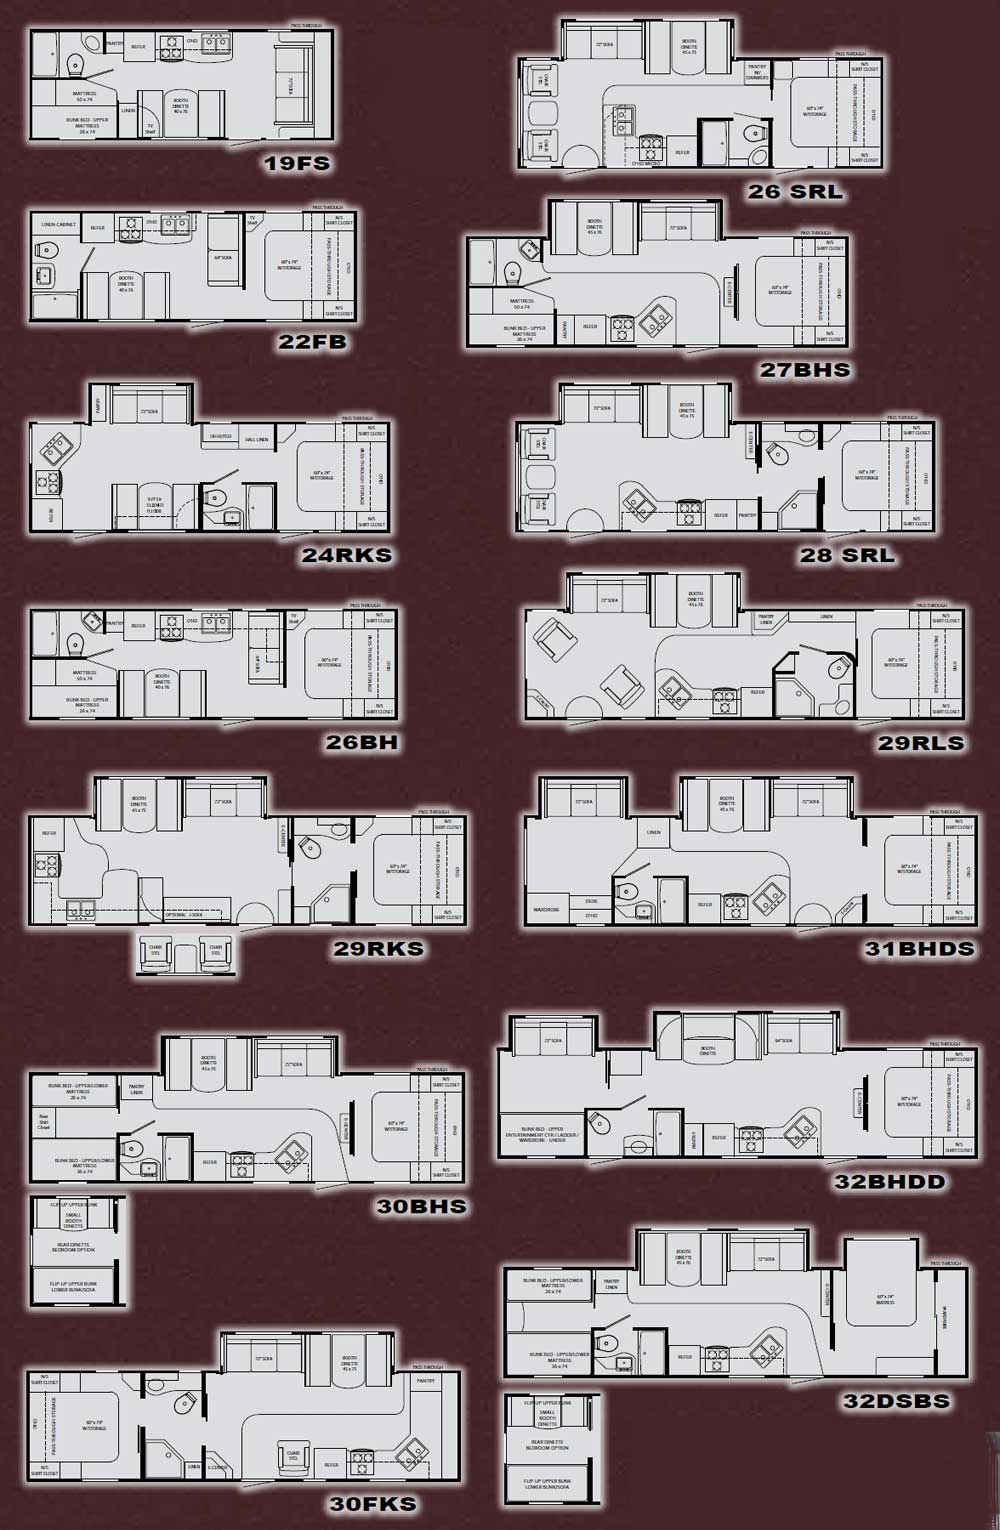 motorhome wiring diagram mercedes benz diagrams free heartland north country travel trailer floorplans - large picture